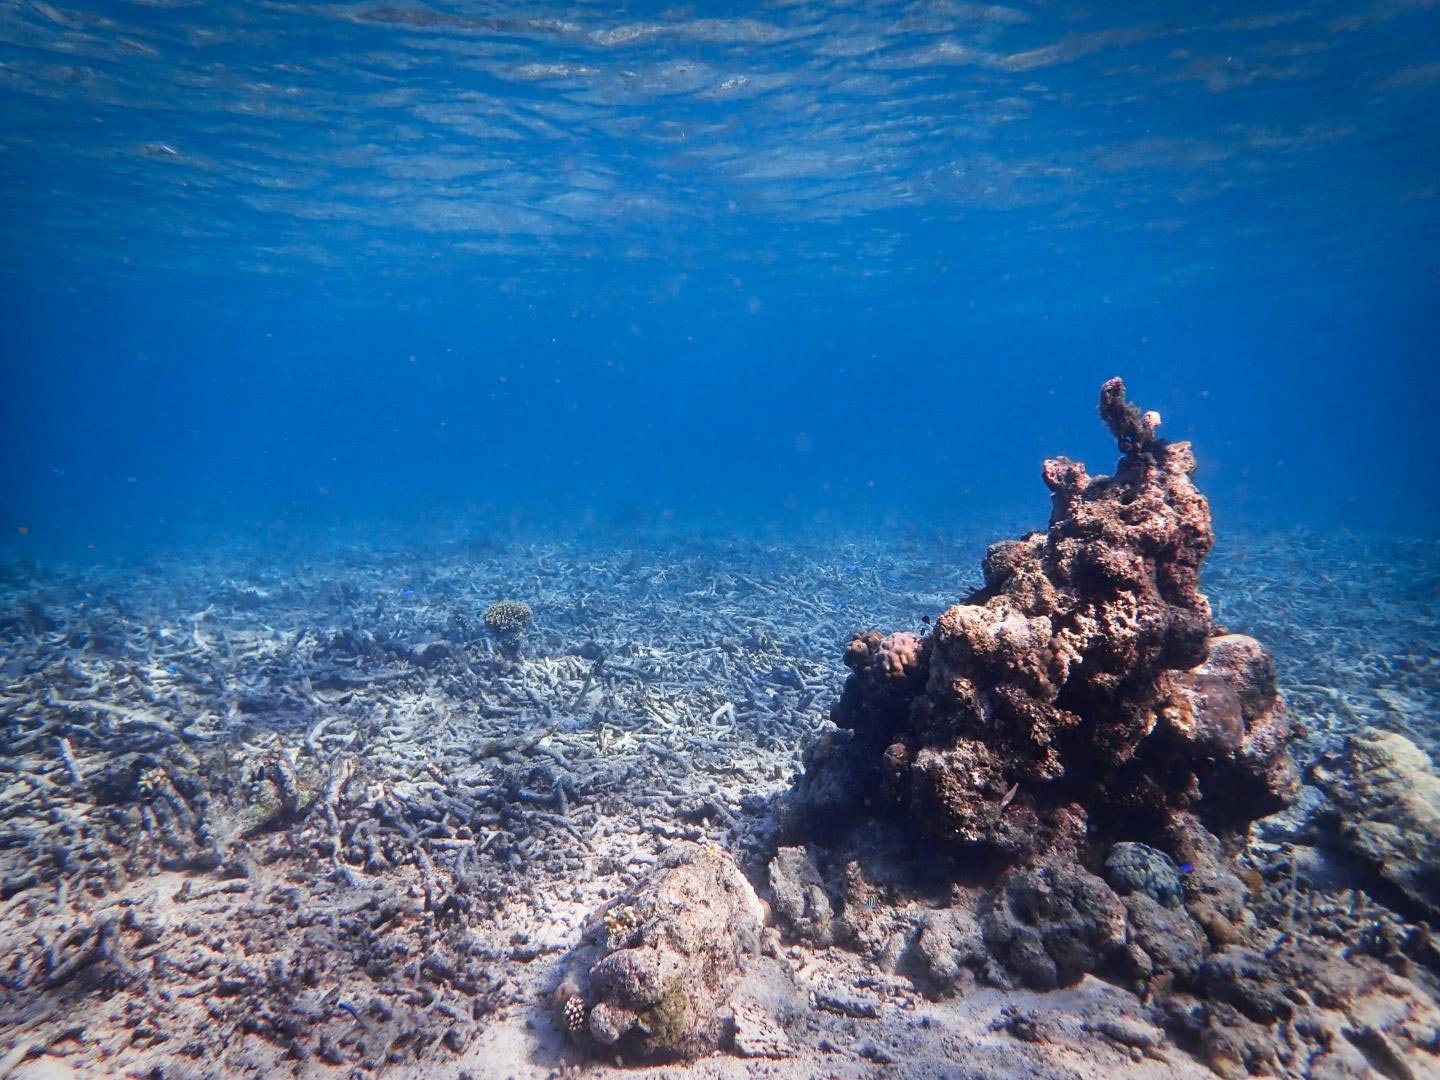 Loudspeakers are bringing fish back to coral reefs